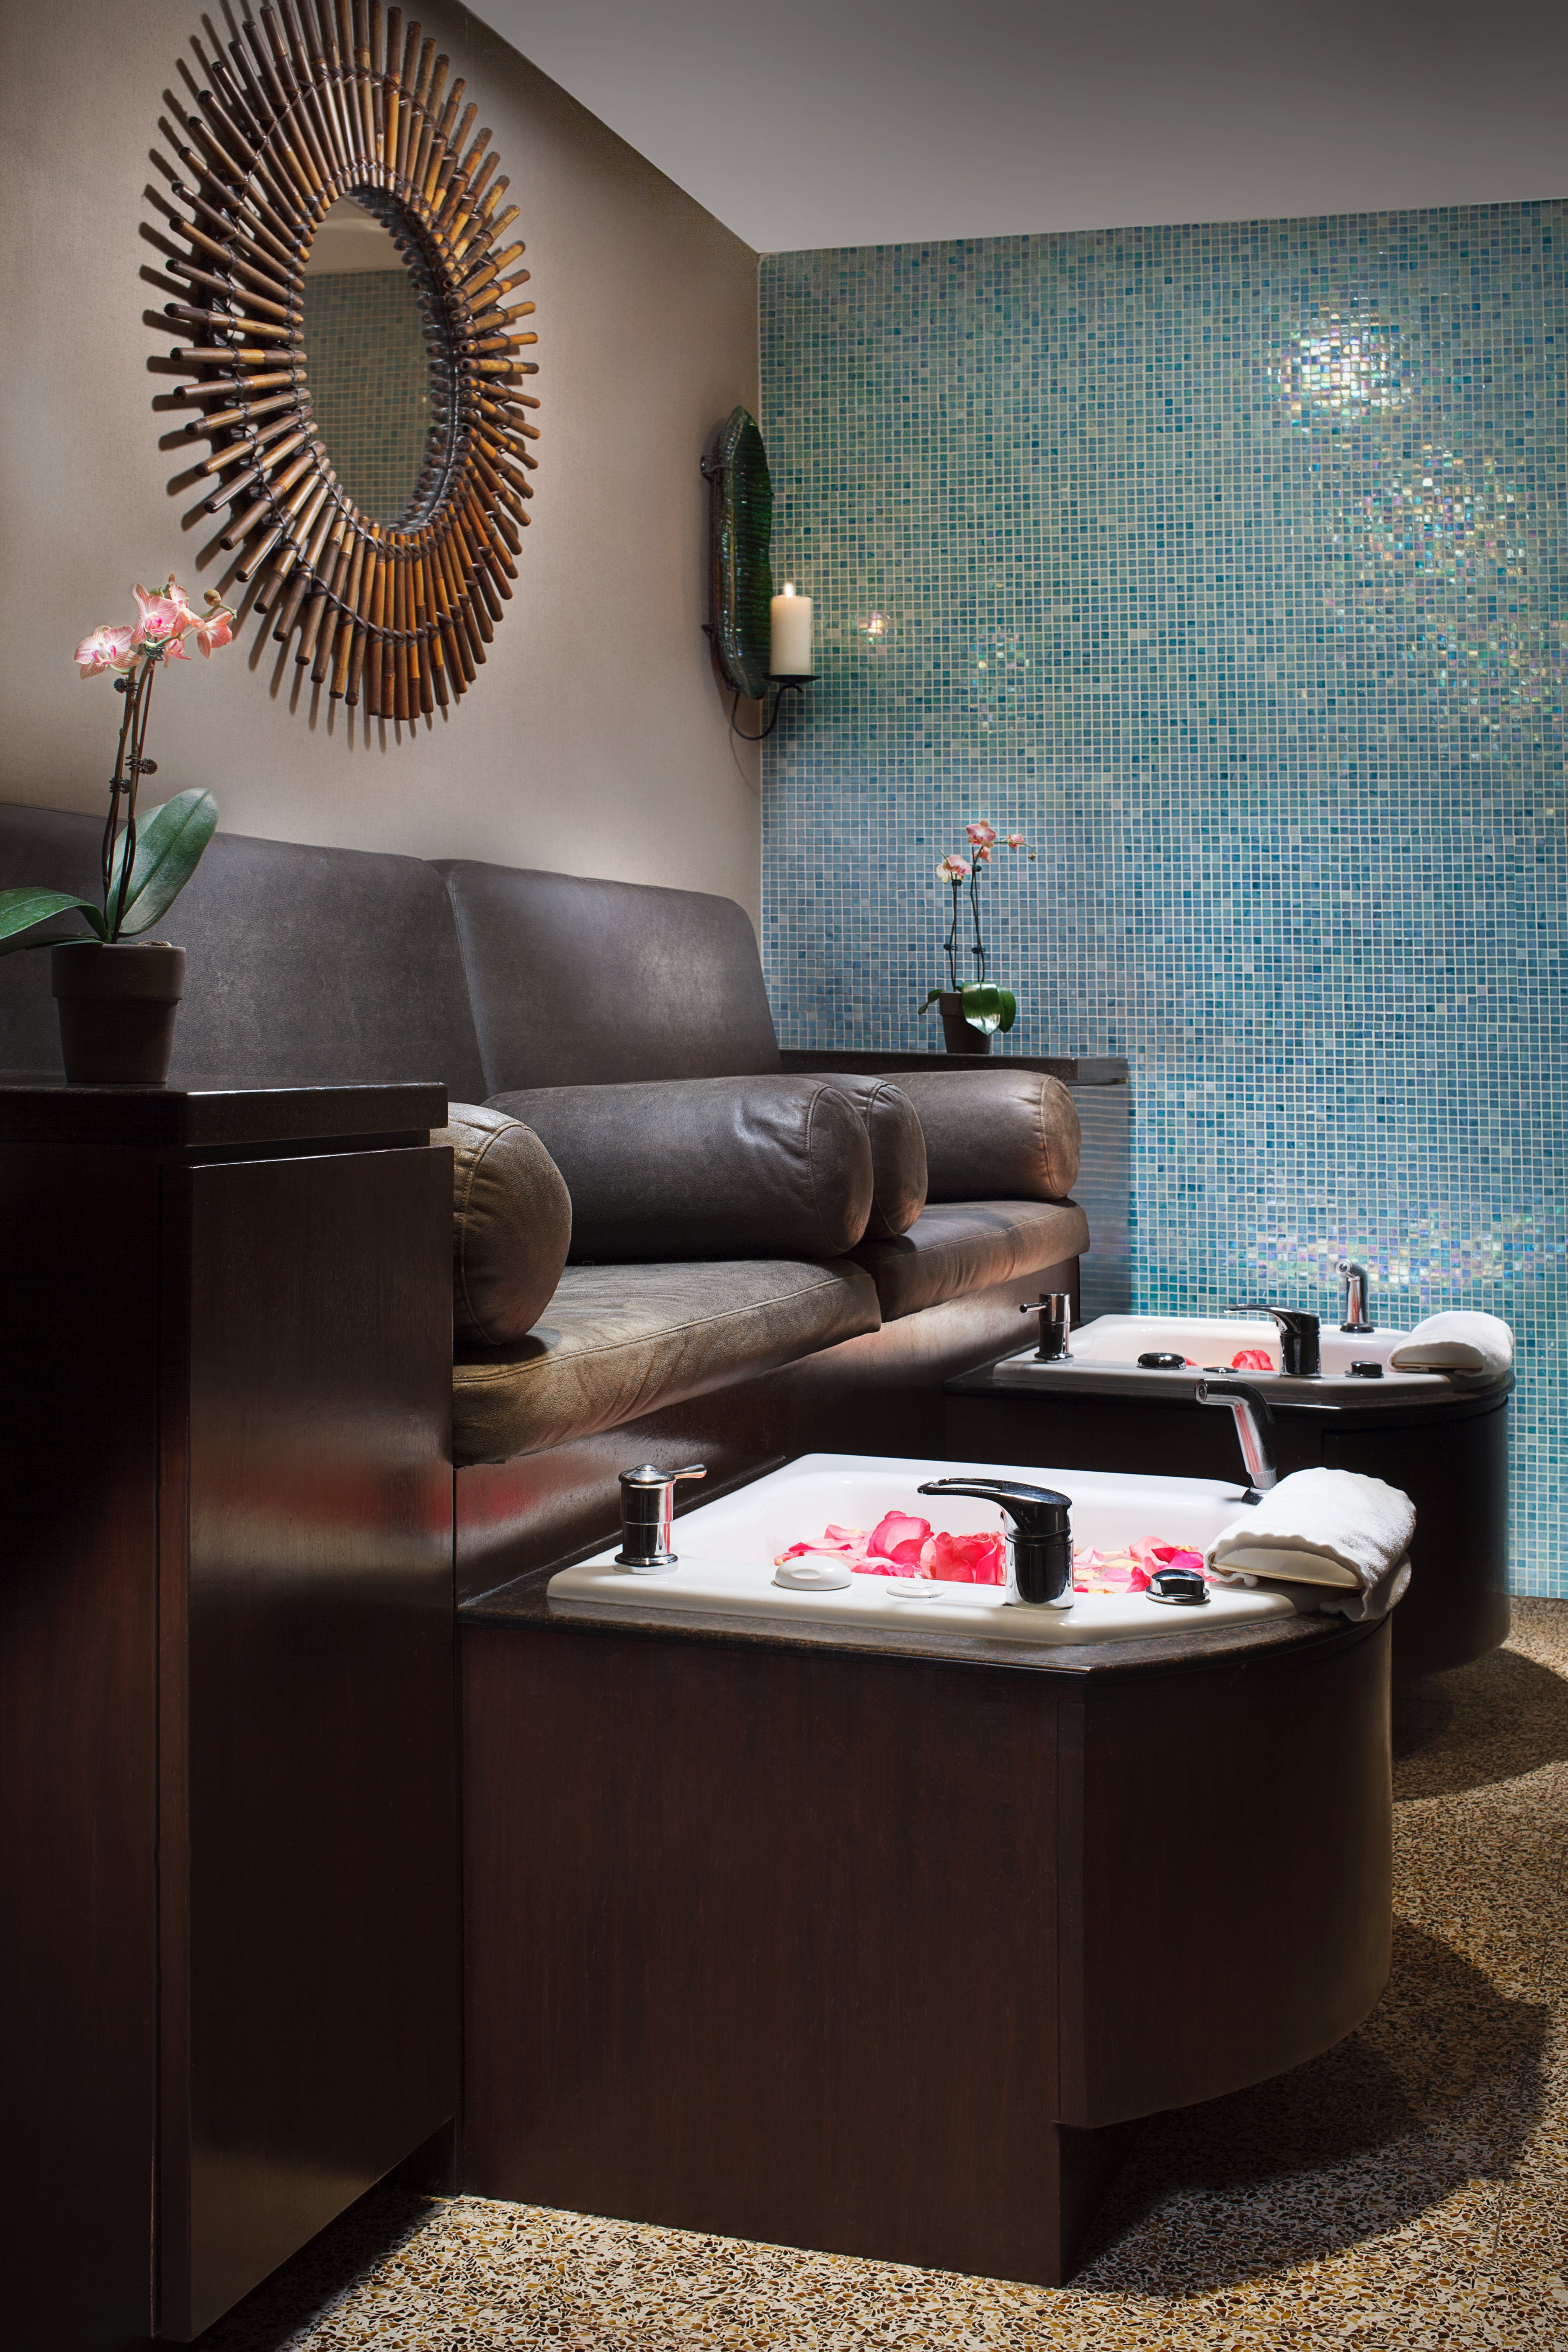 Dreamsicle Pedicure at Spa at Dana chicago spa treatments